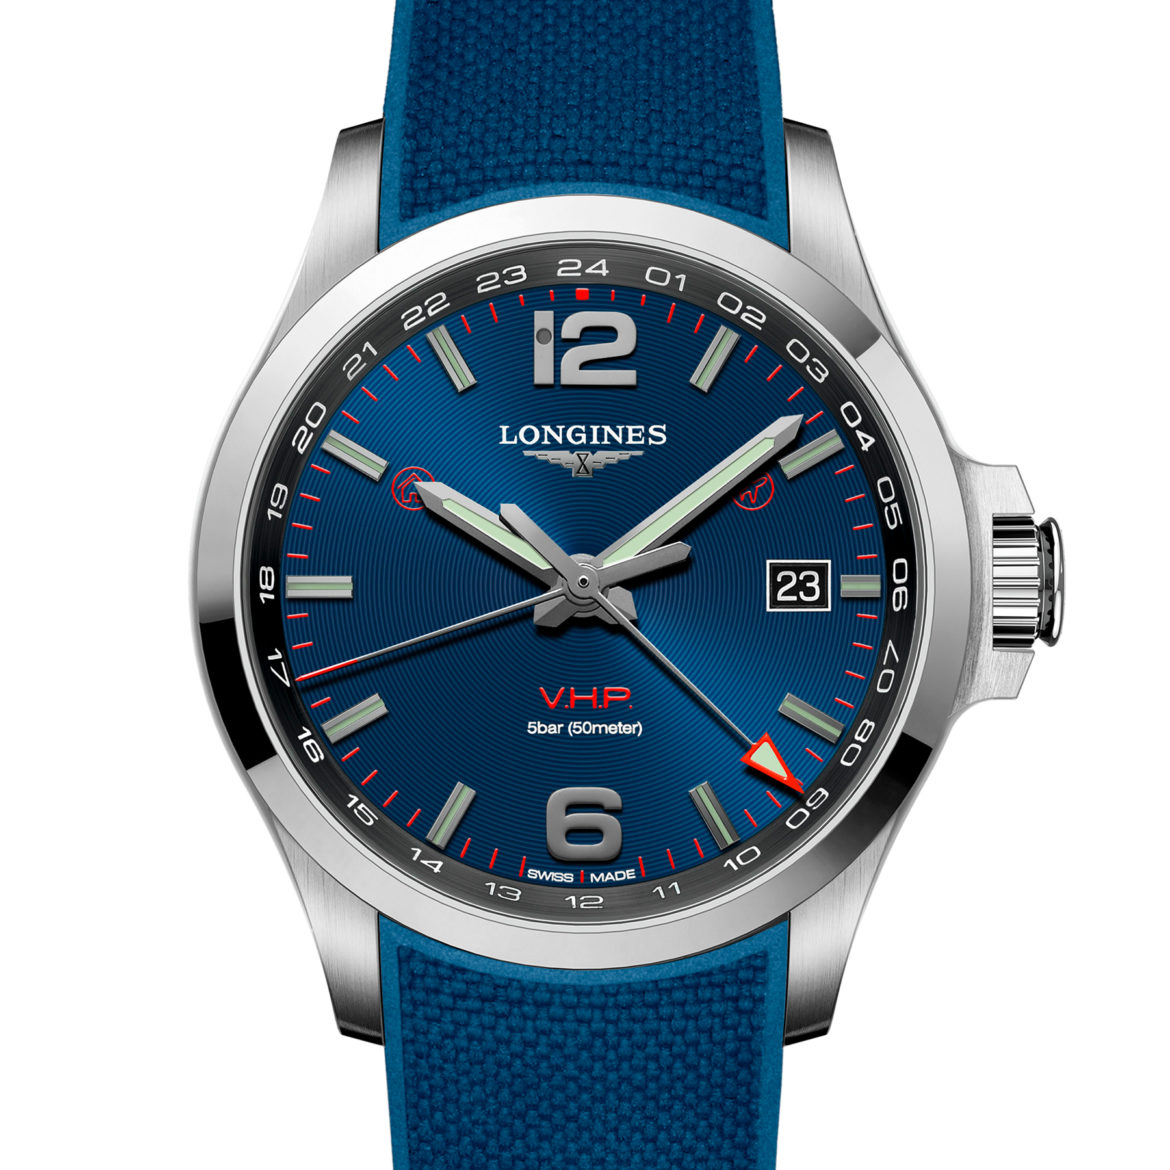 LONGINES</br/>Conquest VHP </br/>L37284969